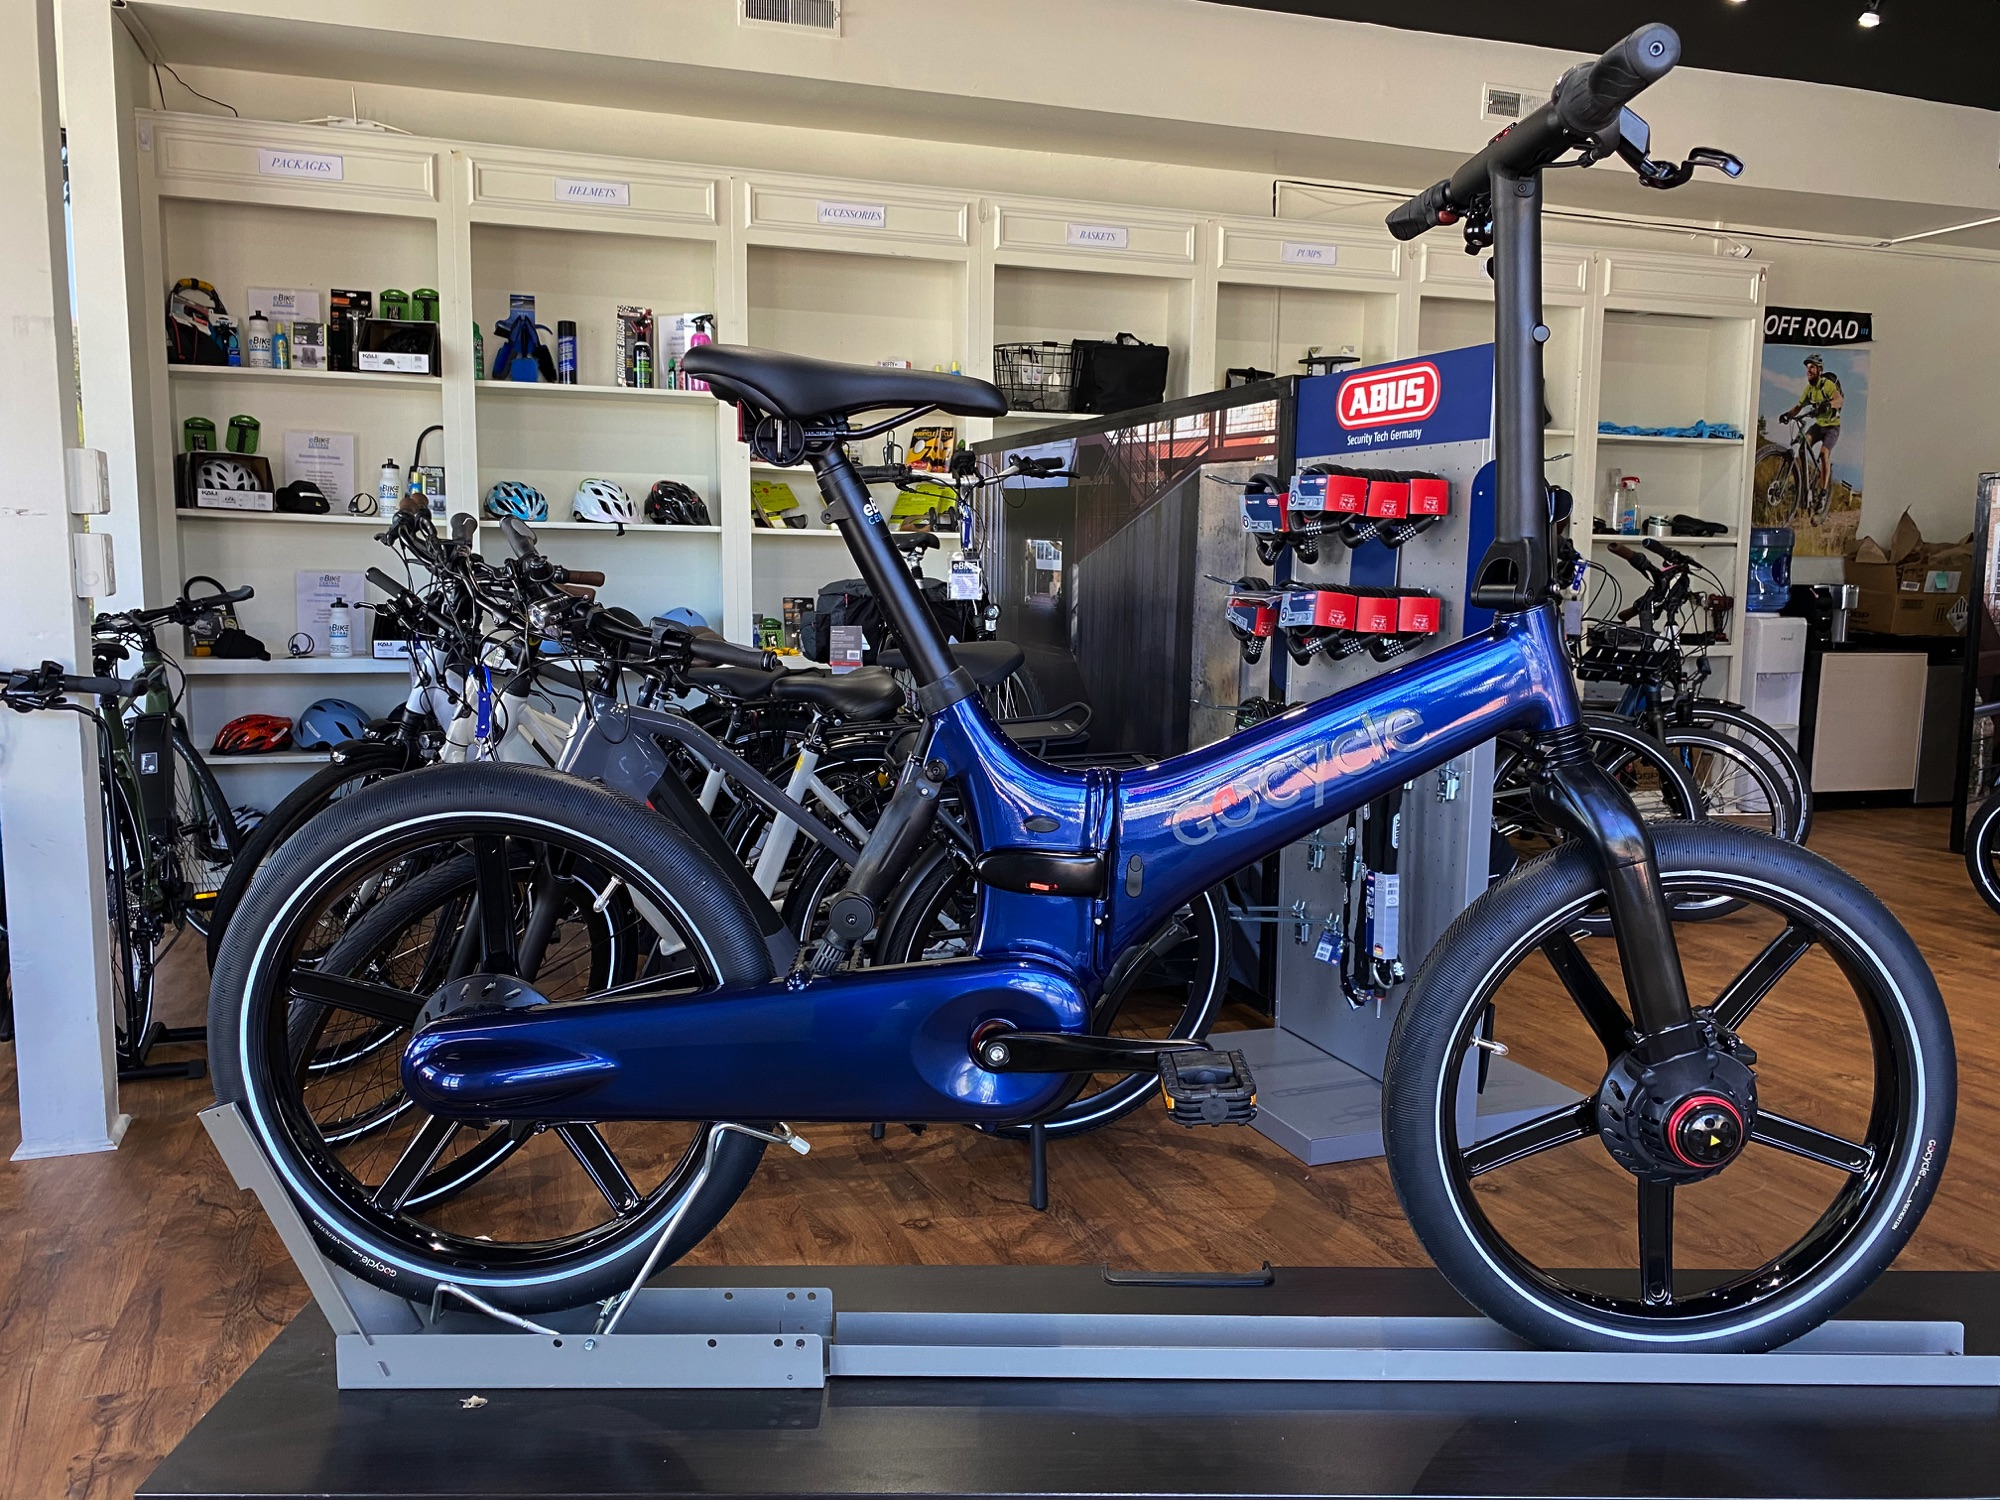 Gocycle GX, eBike Central, Greensboro and Charlotte NC